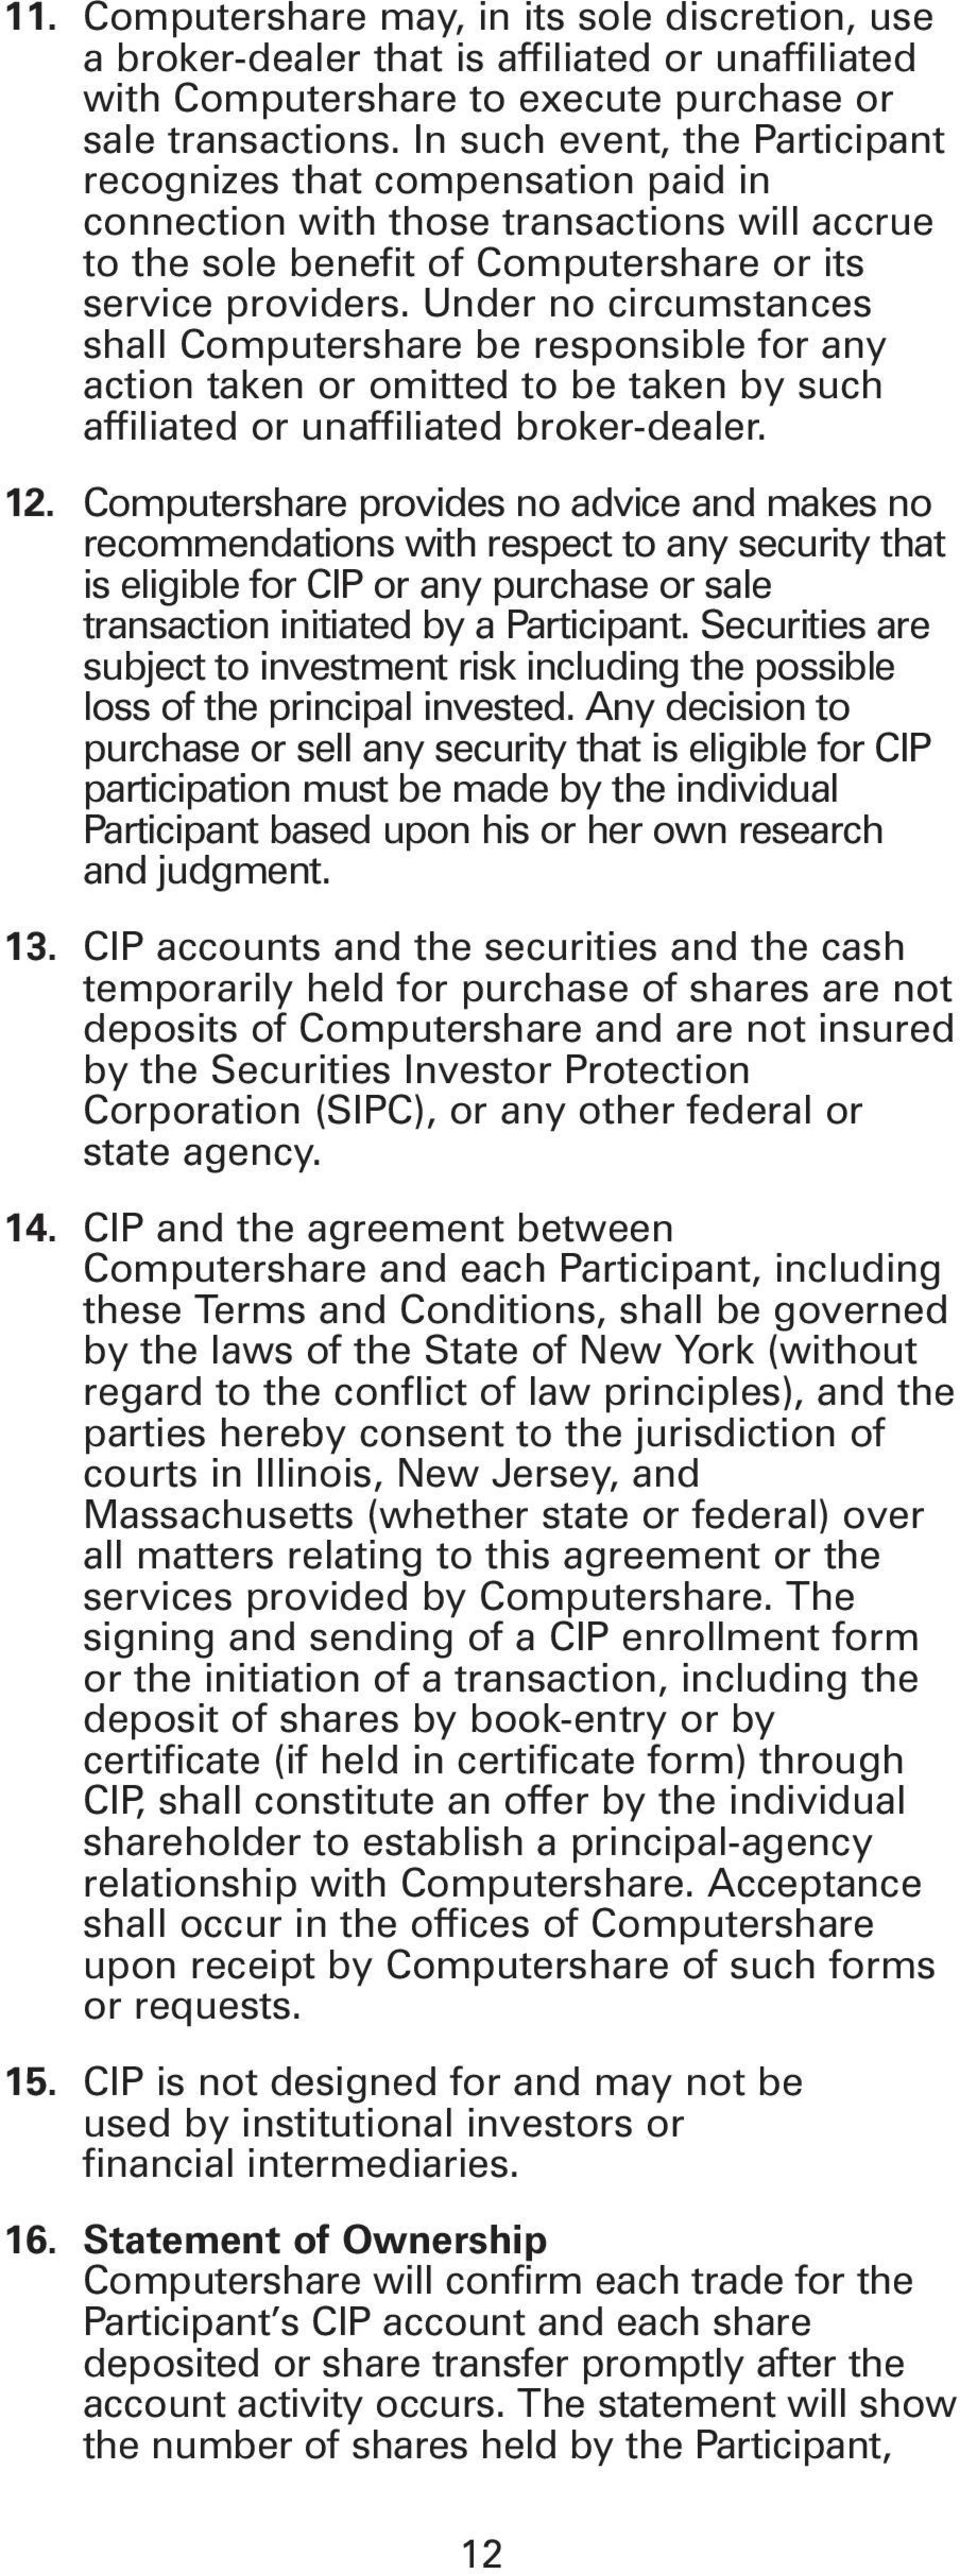 Under no circumstances shall Computershare be responsible for any action taken or omitted to be taken by such affiliated or unaffiliated broker-dealer. 12.